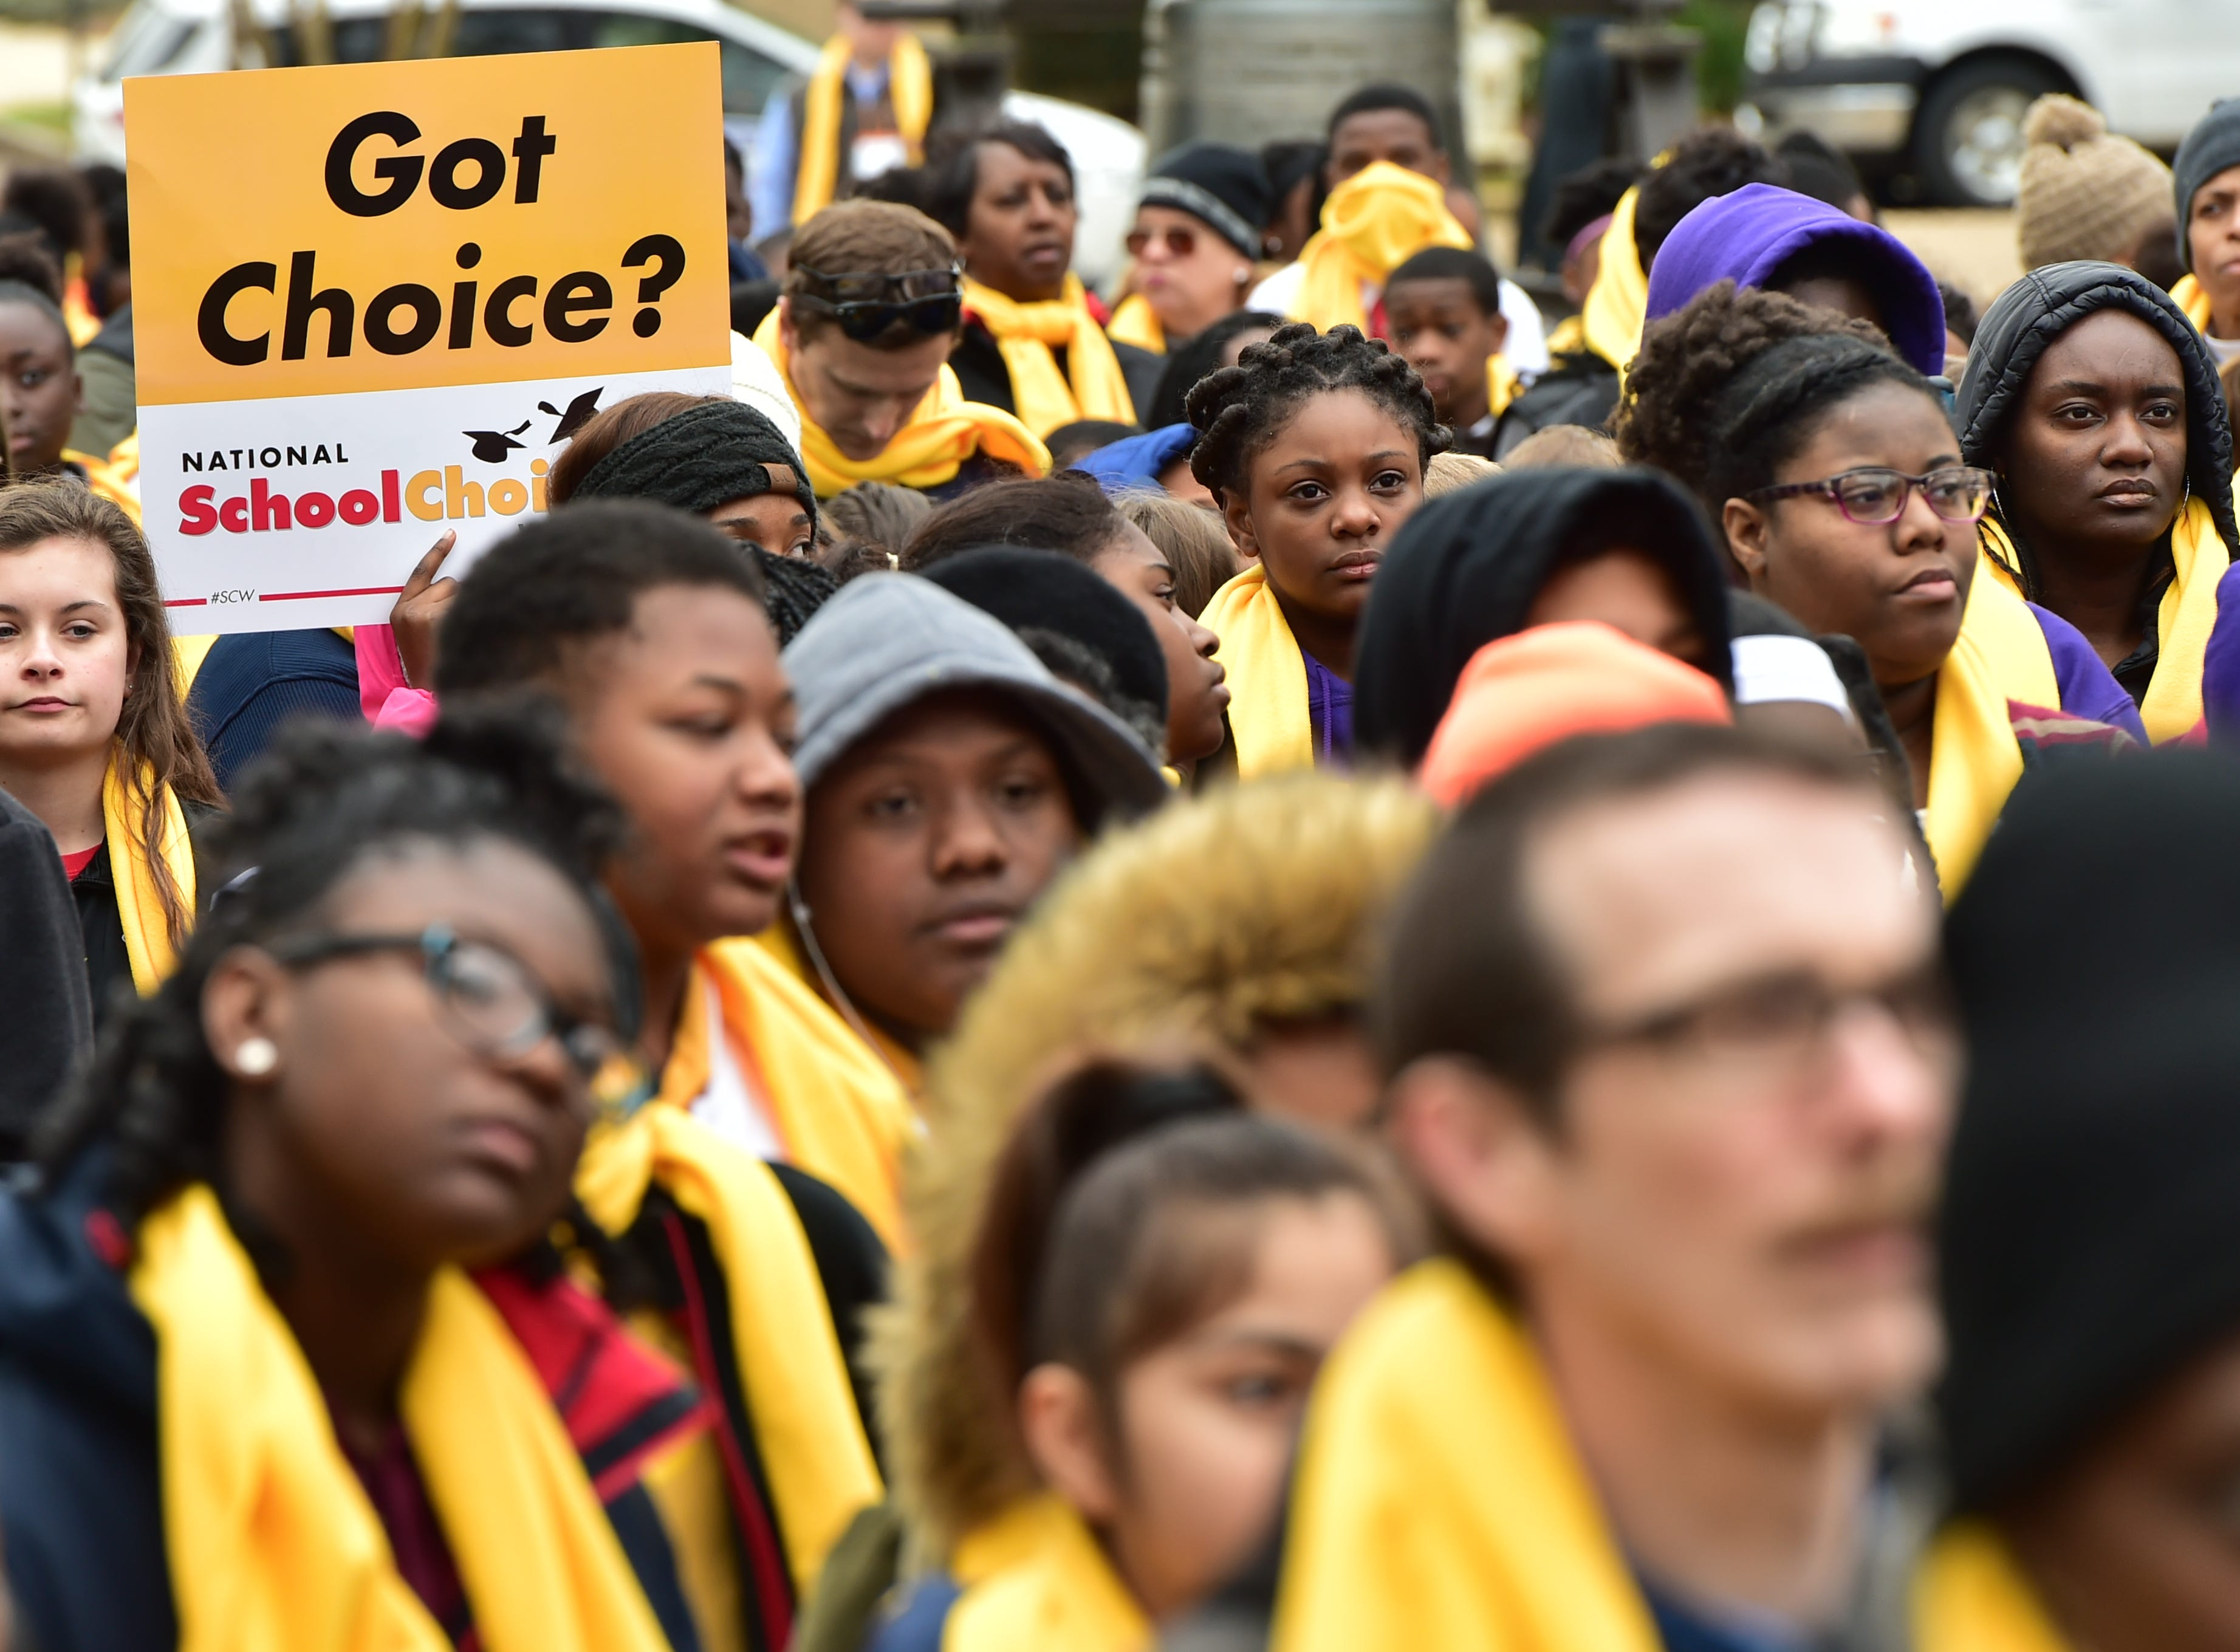 A National School Choice Week rally was held on the steps of the capitol building in Jackson, MS today. Students, parents and educators from across the state attended the rally and met with legislators regarding school choice in Mississippi. Tuesday, Jan. 22, 2019.